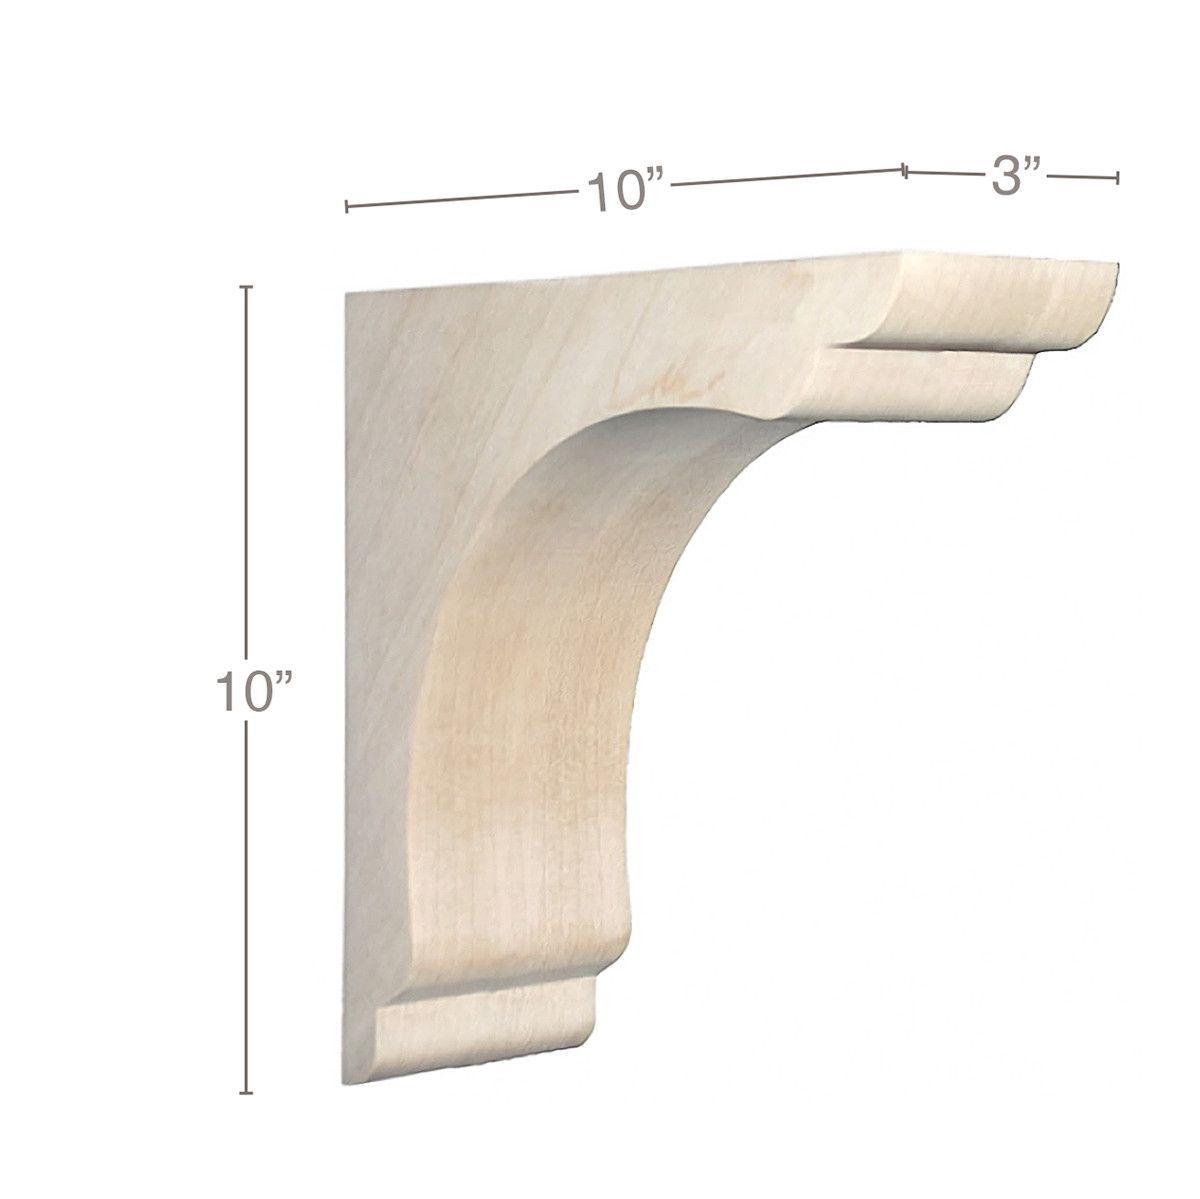 Shaker Overhang Bar Bracket Corbel 3 W X 10 H X 10 D Unfinished Wood Furniture Wooden Corbels Kitchen Island Corbels